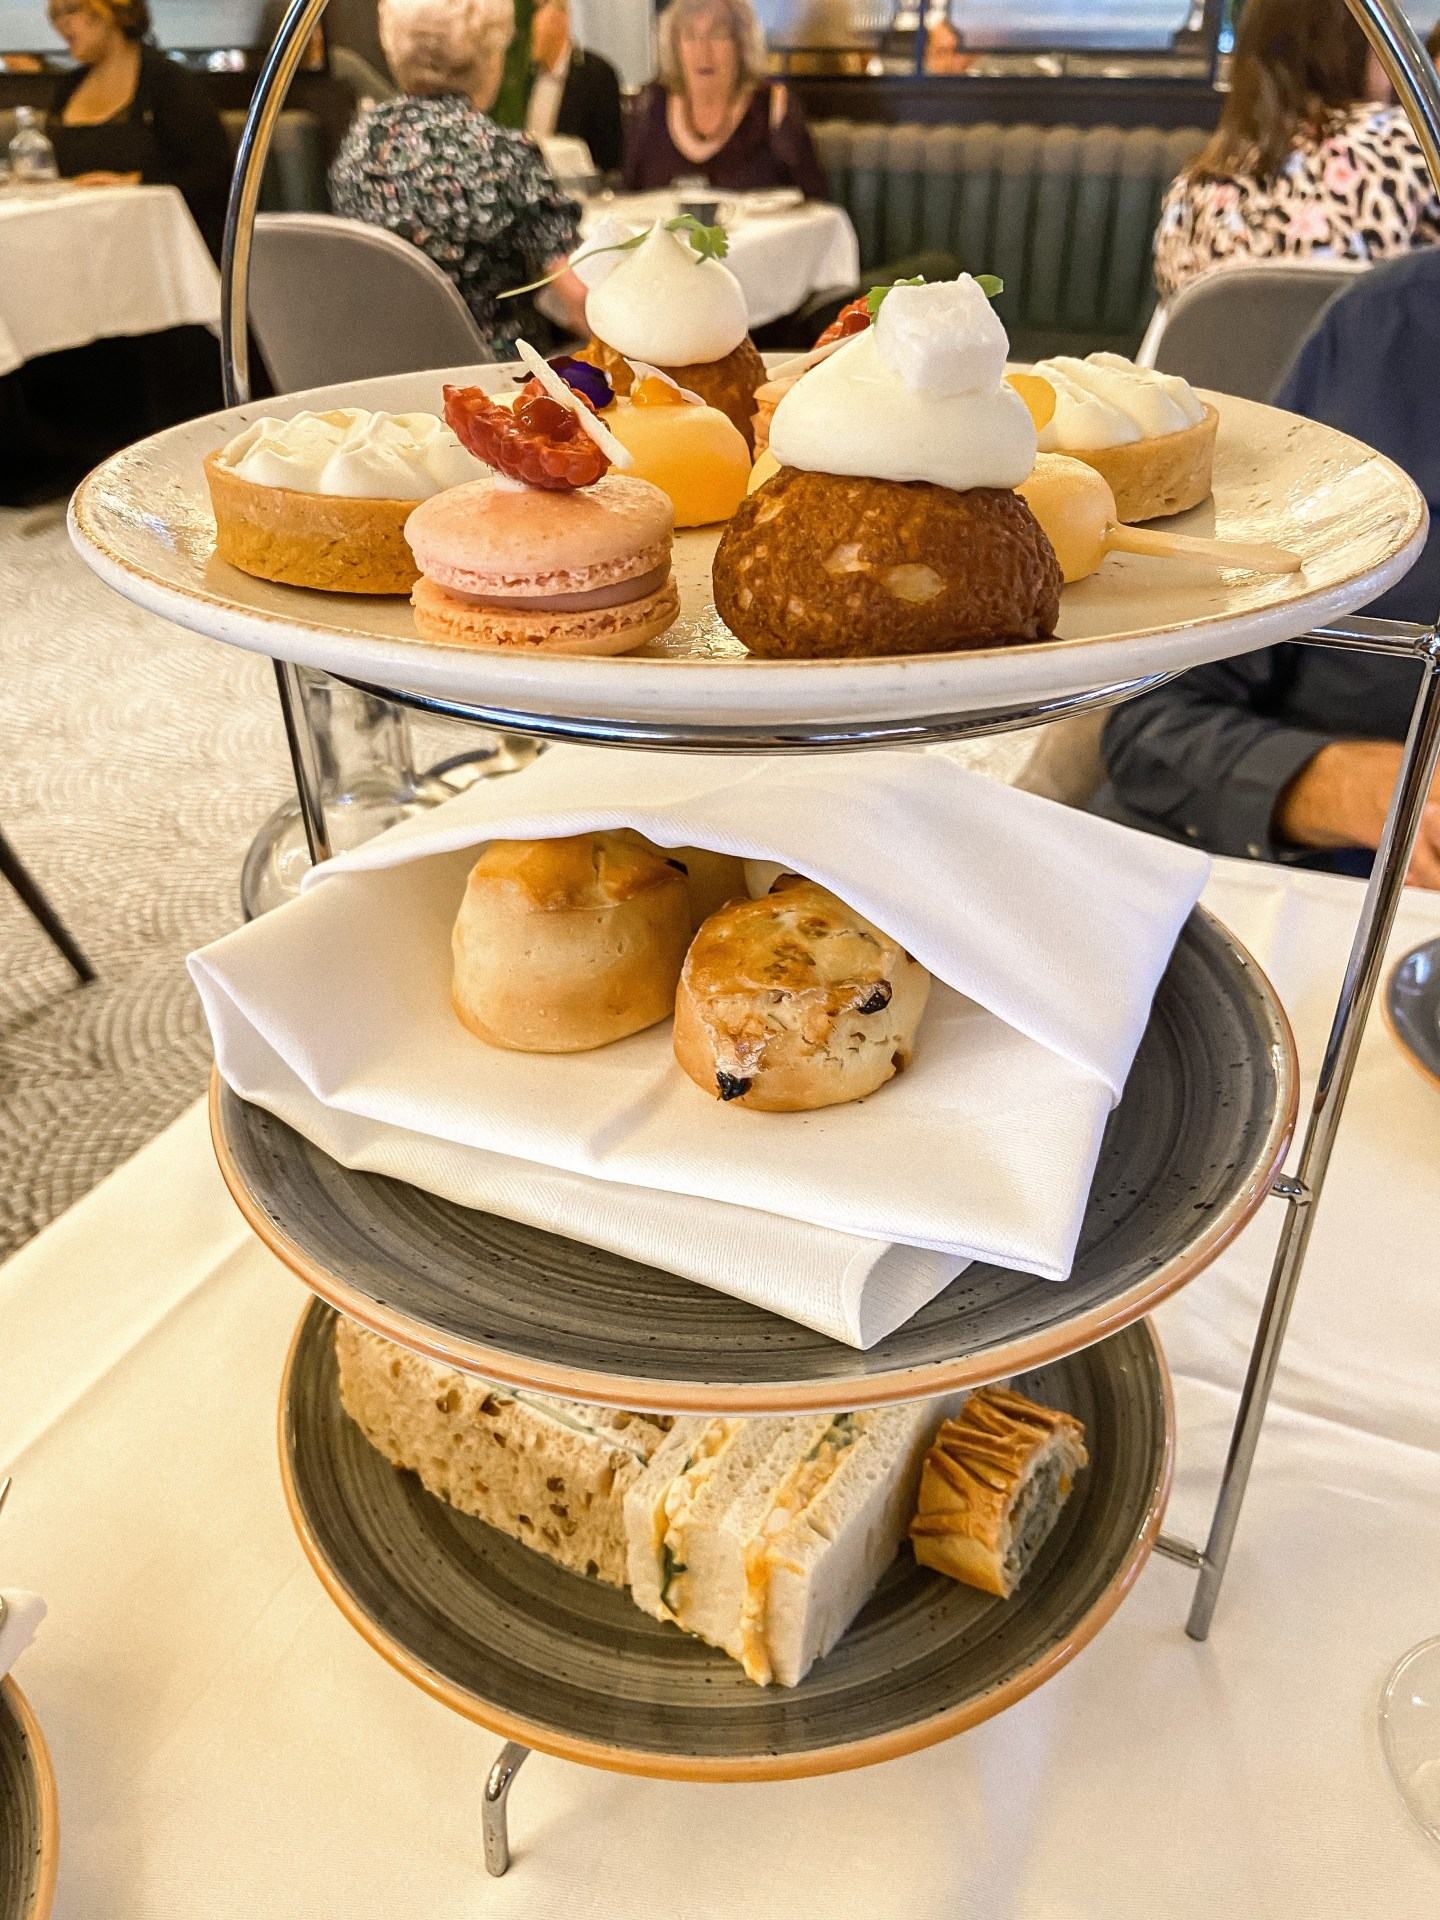 Celebrating In Style with Afternoon Tea at The Grand, York